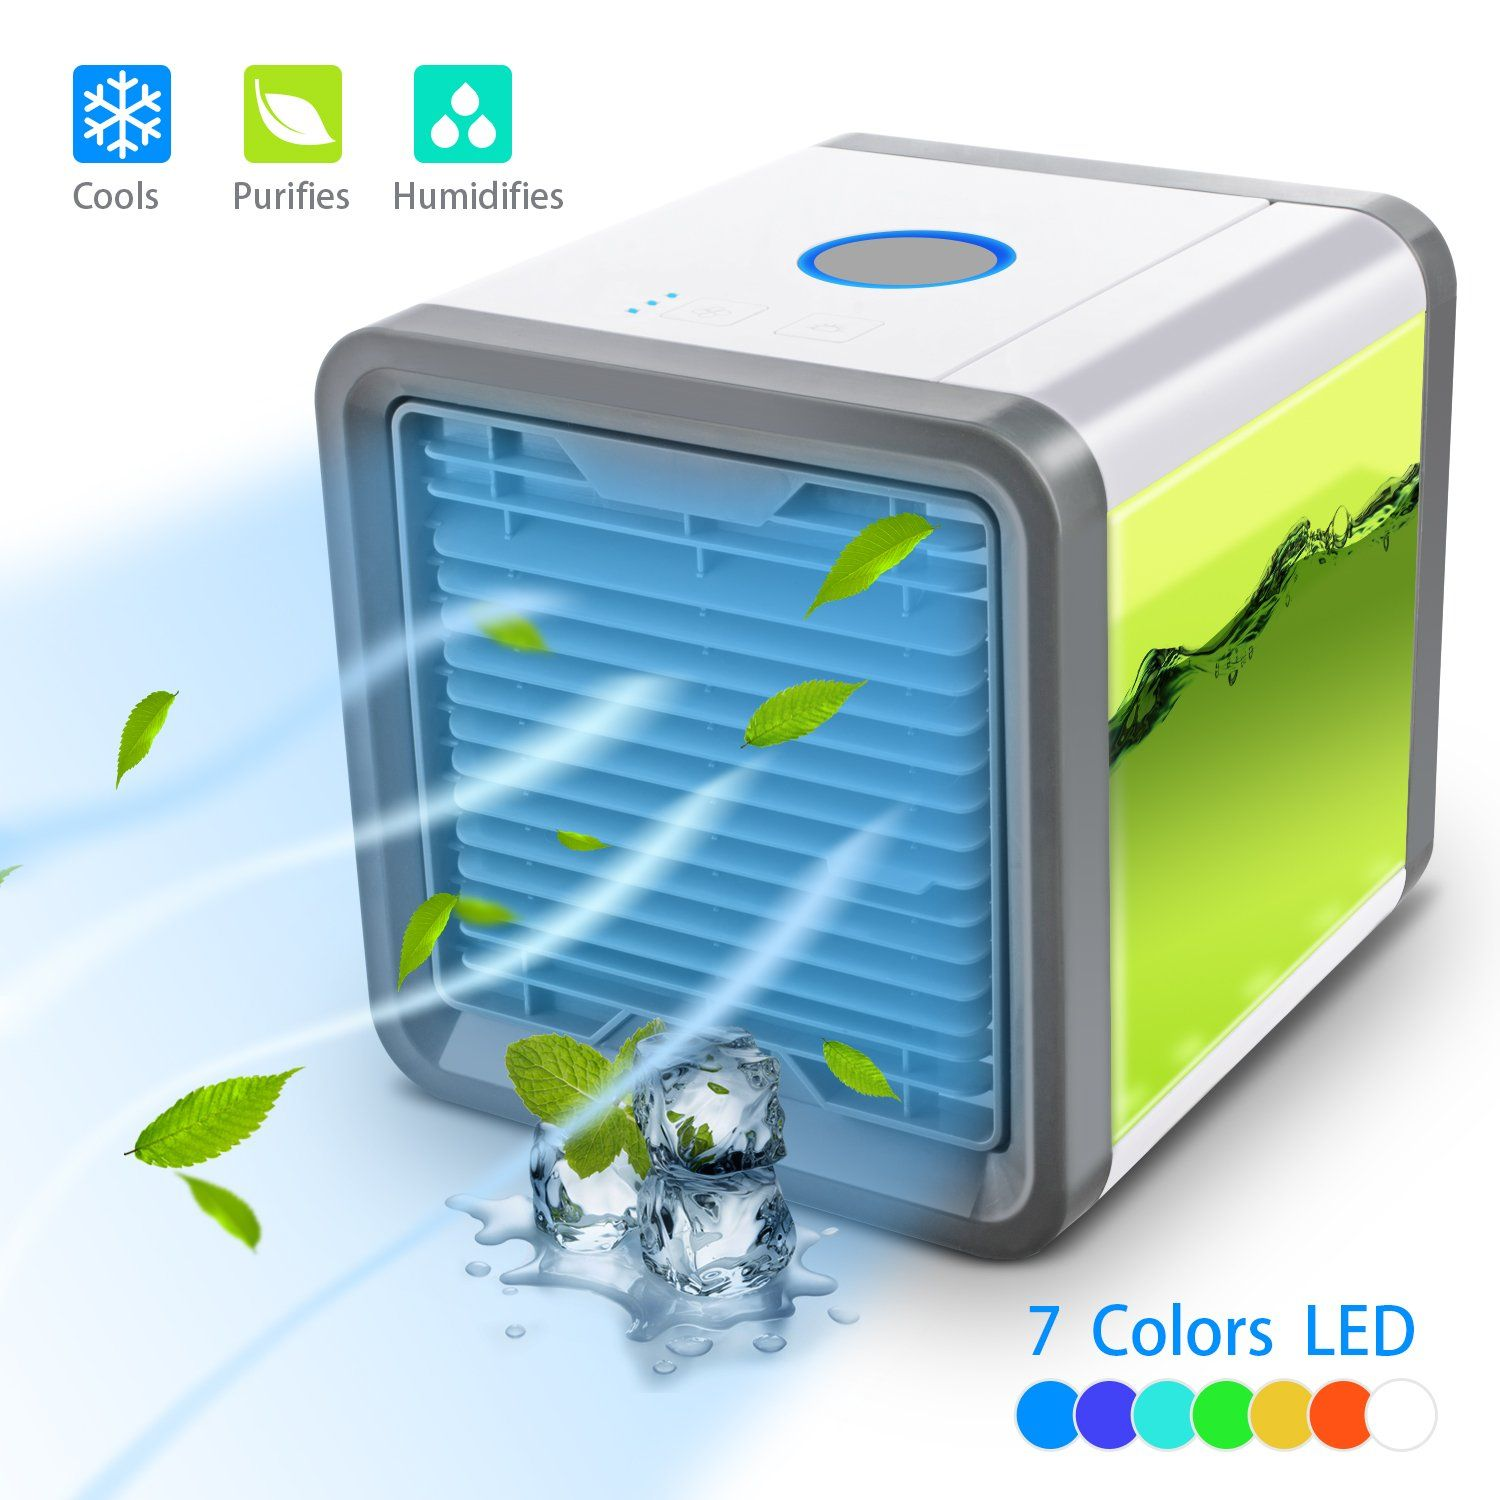 Personal Space Cooler 3in1 Evaporative Air Conditioner Humidifier Air Purifier 3 Fan Speeds 4 Foot Air Cooler Fan Air Cooler Air Purifier Humidifier